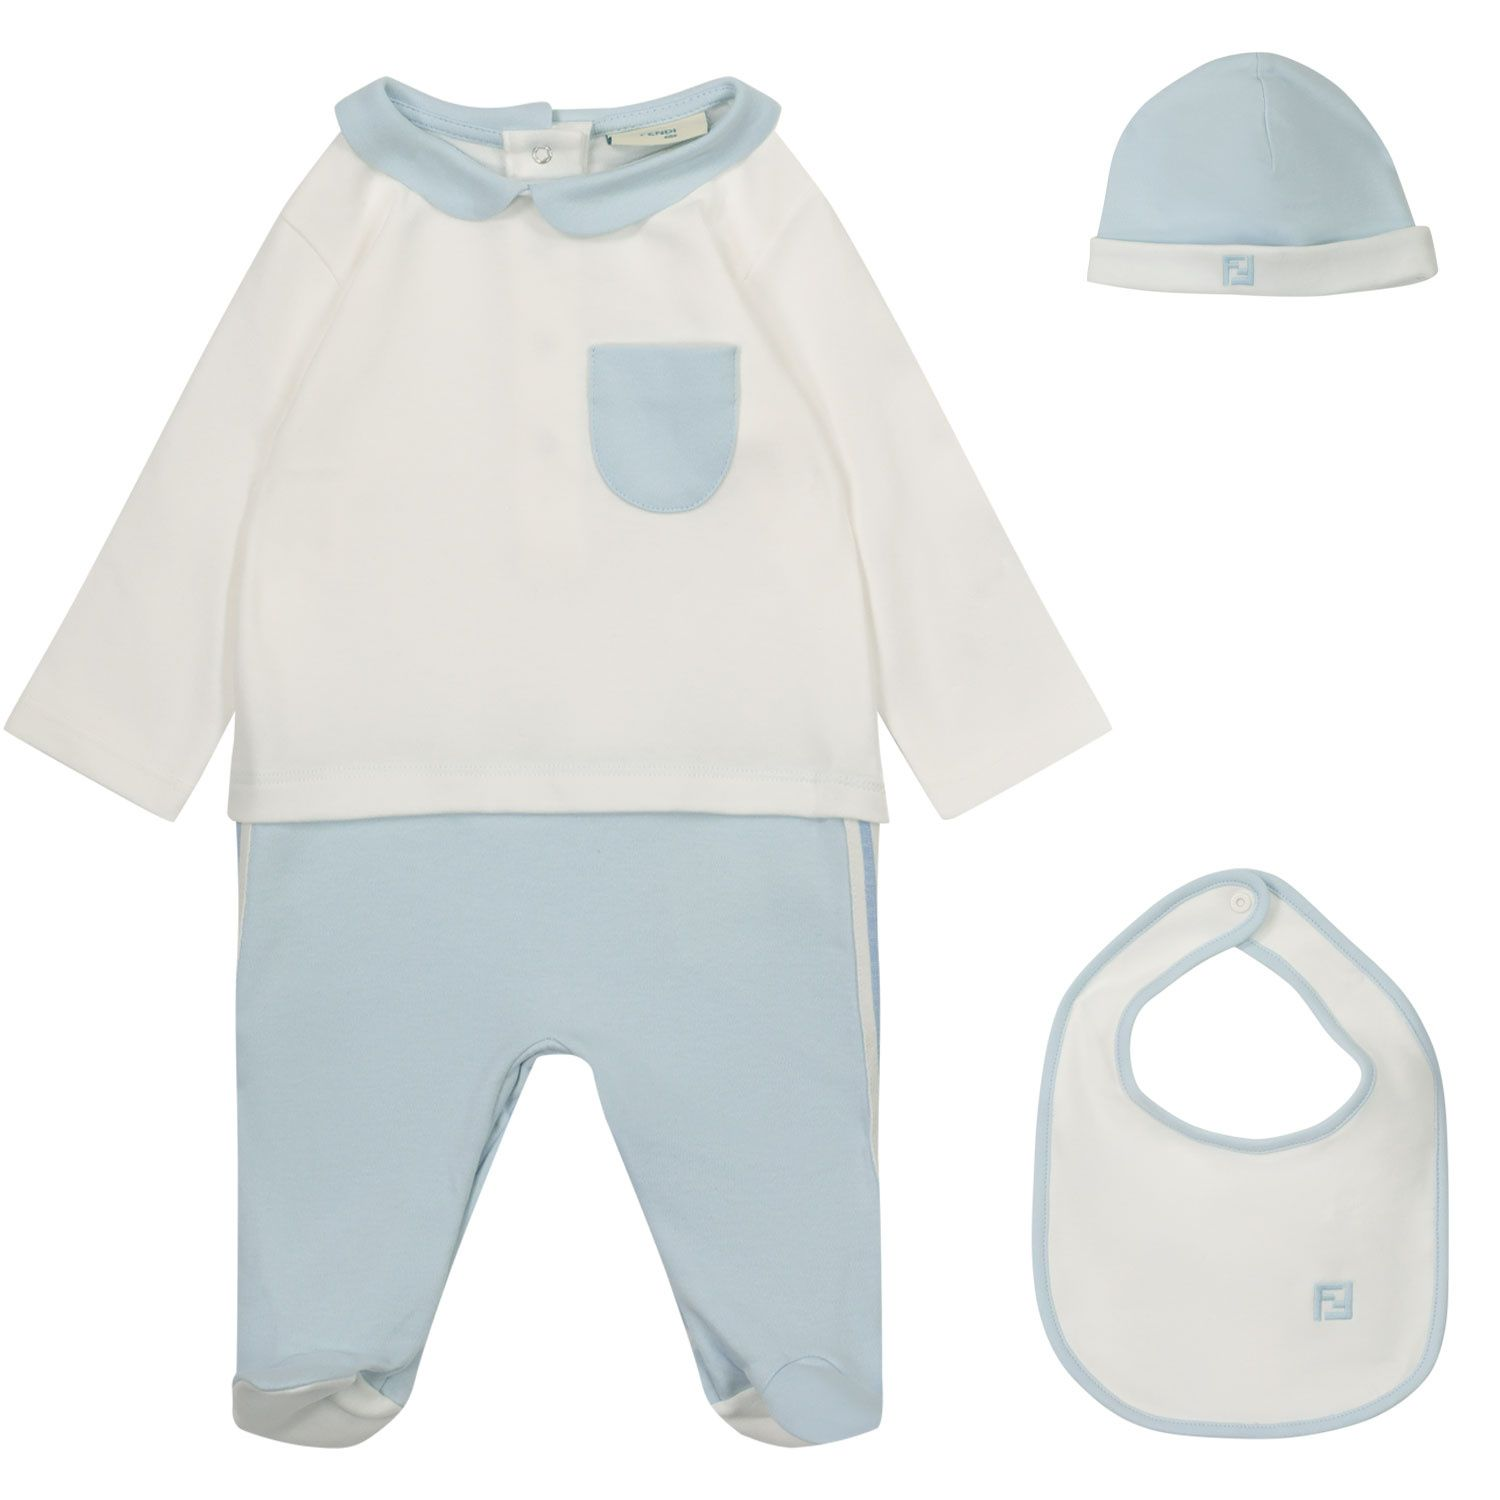 Picture of Fendi BUK077 A8LK baby playsuit light blue